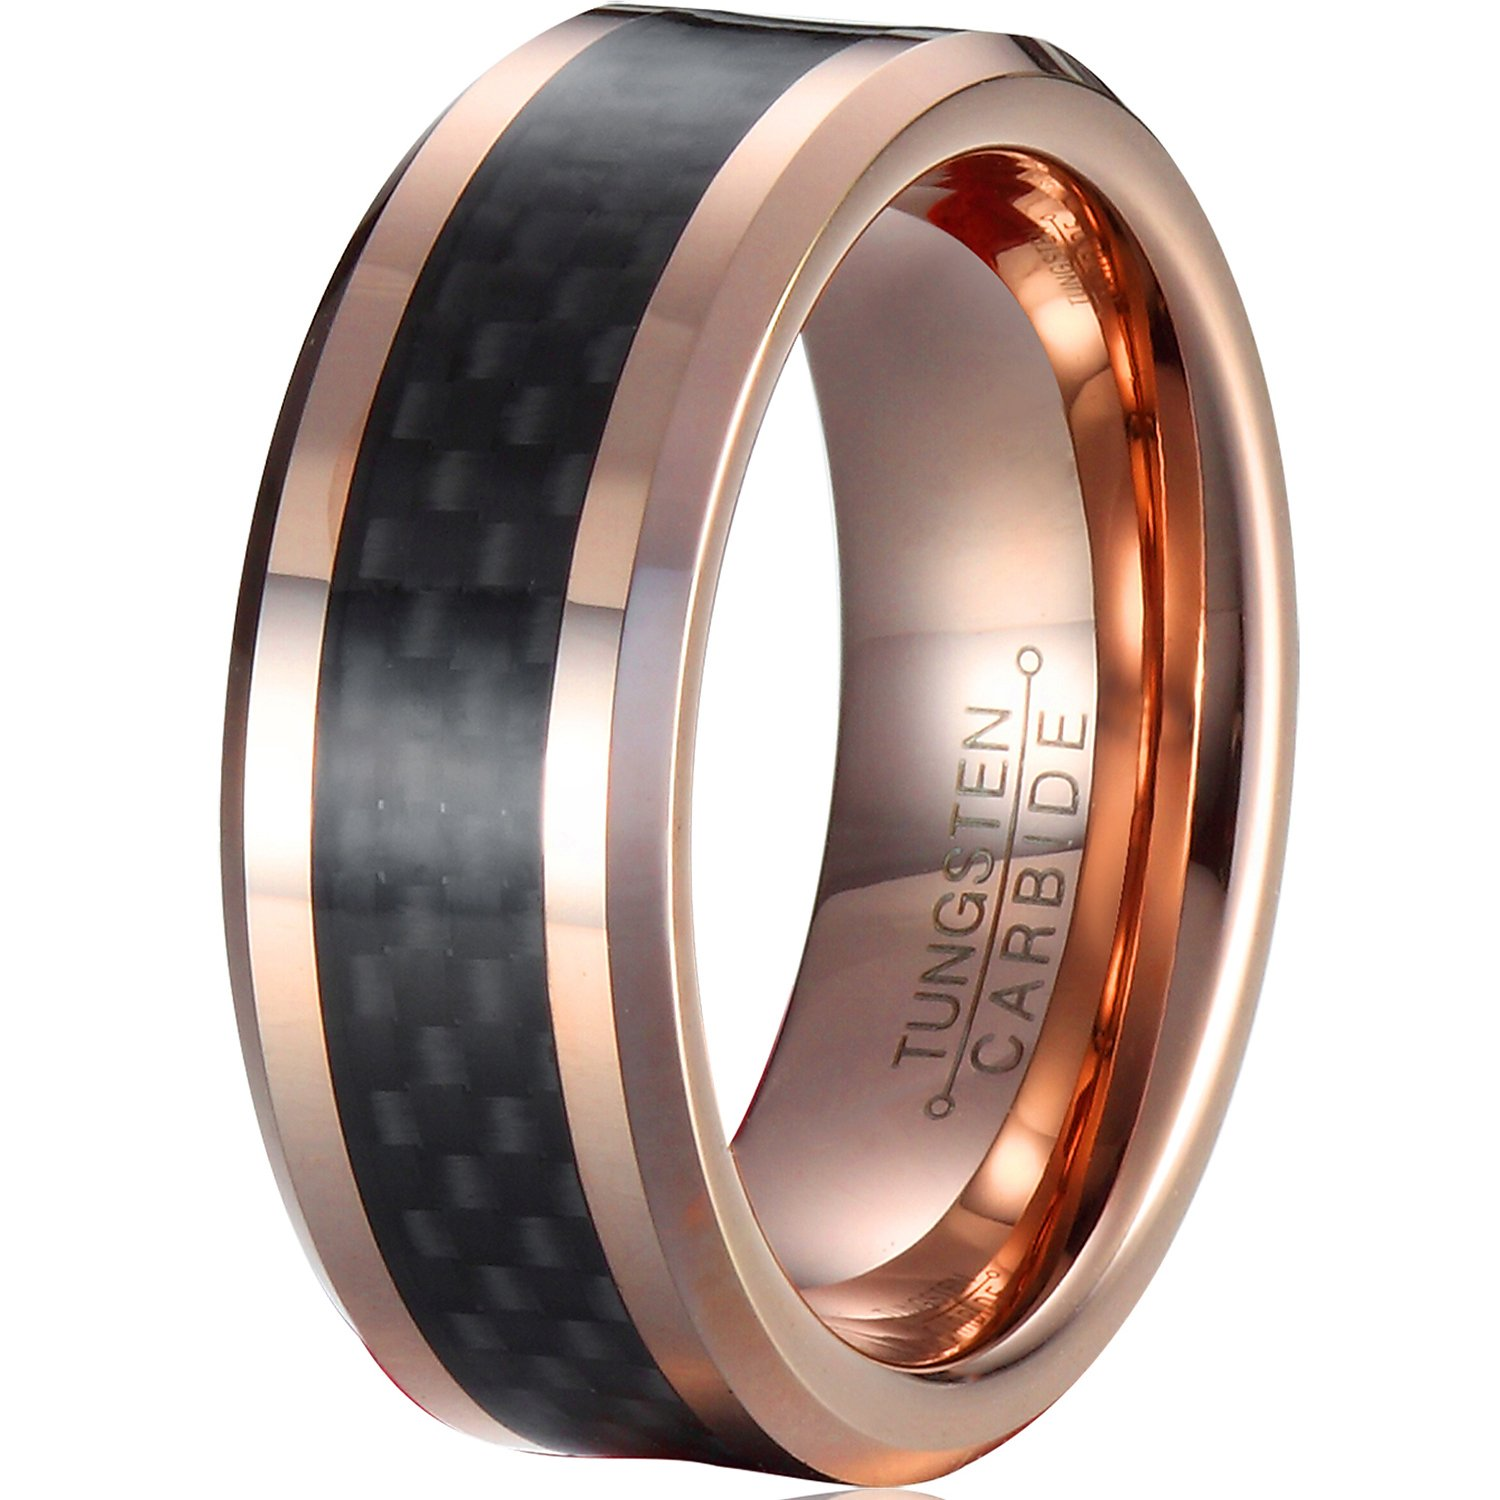 webstore men l product occasion polished category wedding s jones rose band jewellery bands number rings recipient ring sparkle ernest gold mens cobalt